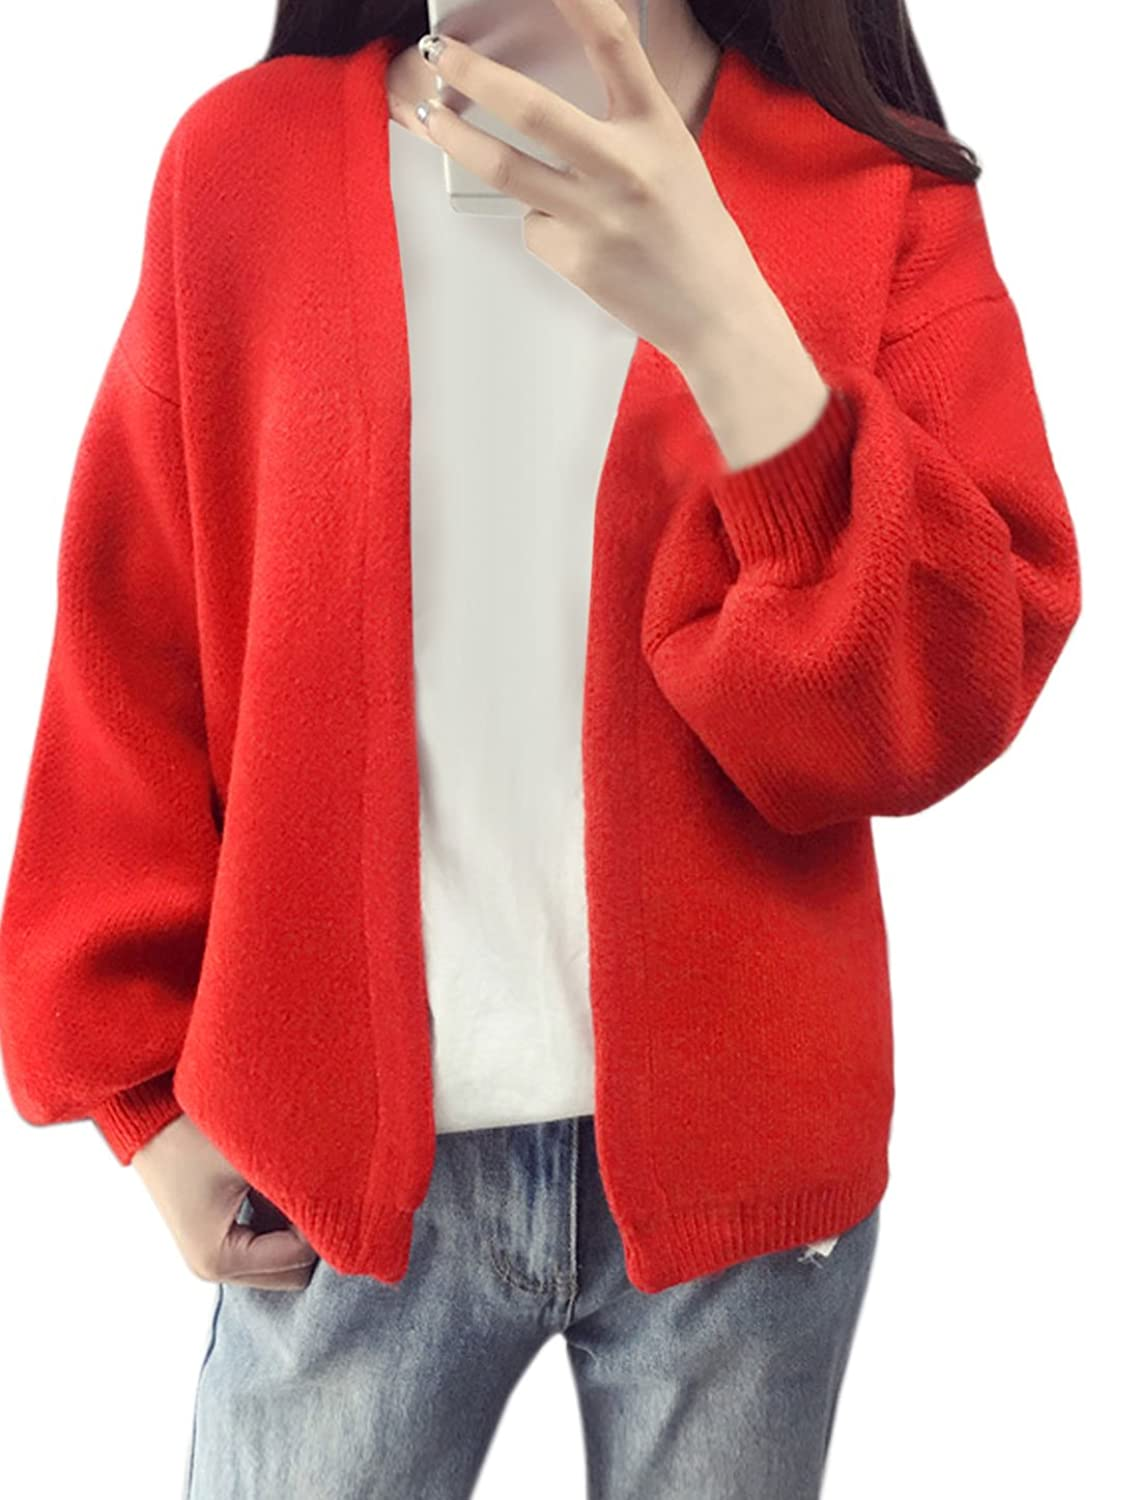 uxcell Women V Neck Batwing Sleeves Hook Eye Closure Knit Cardigan